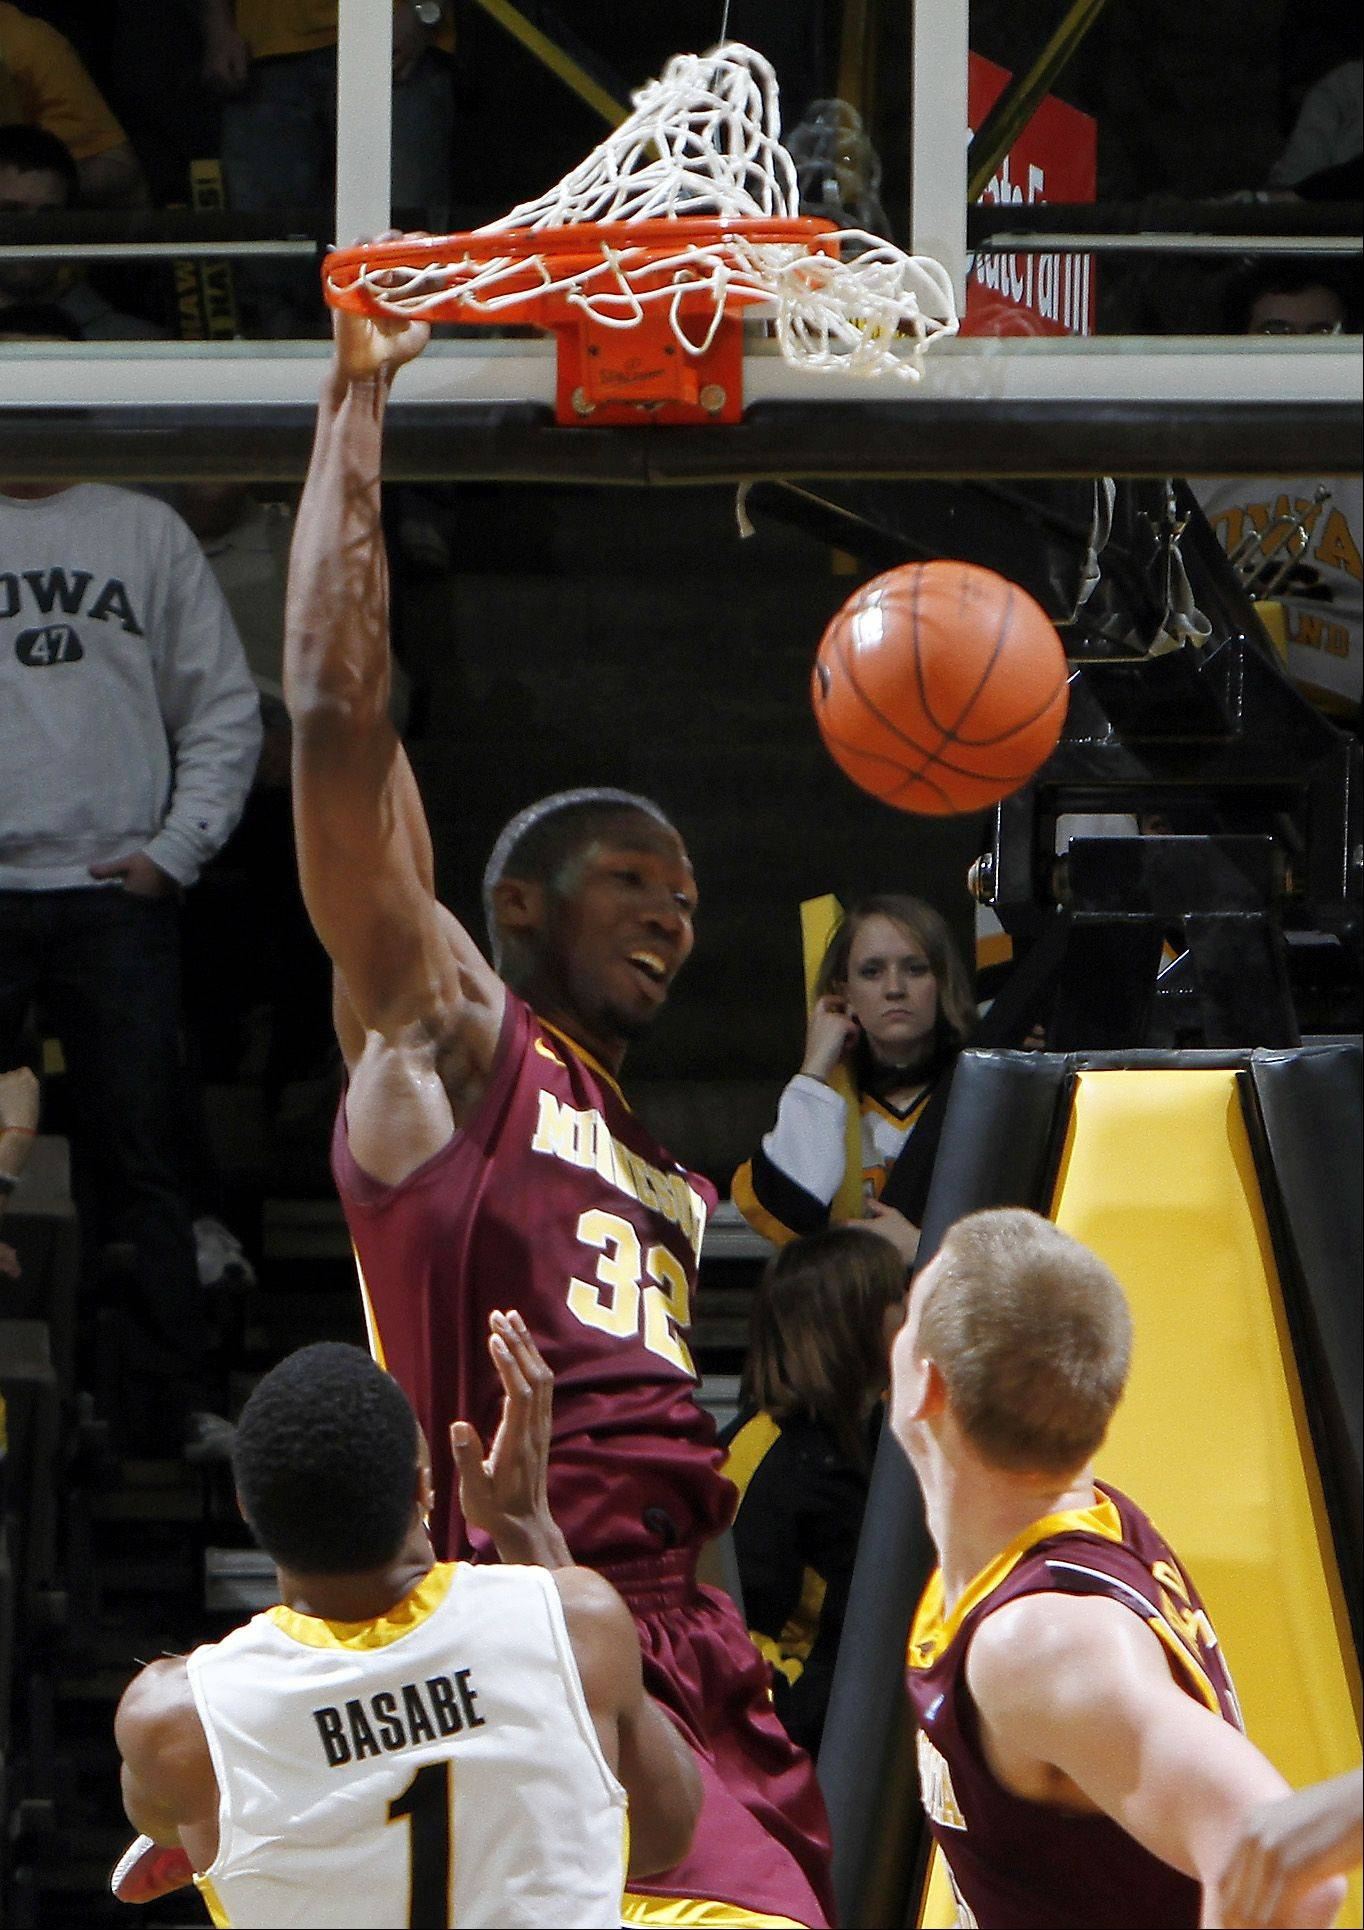 Minnesota's Trevor Mbakwe dunks over Iowa's Melsahn Basabe during a game Feb. 13, 2011, in Iowa City, Iowa.